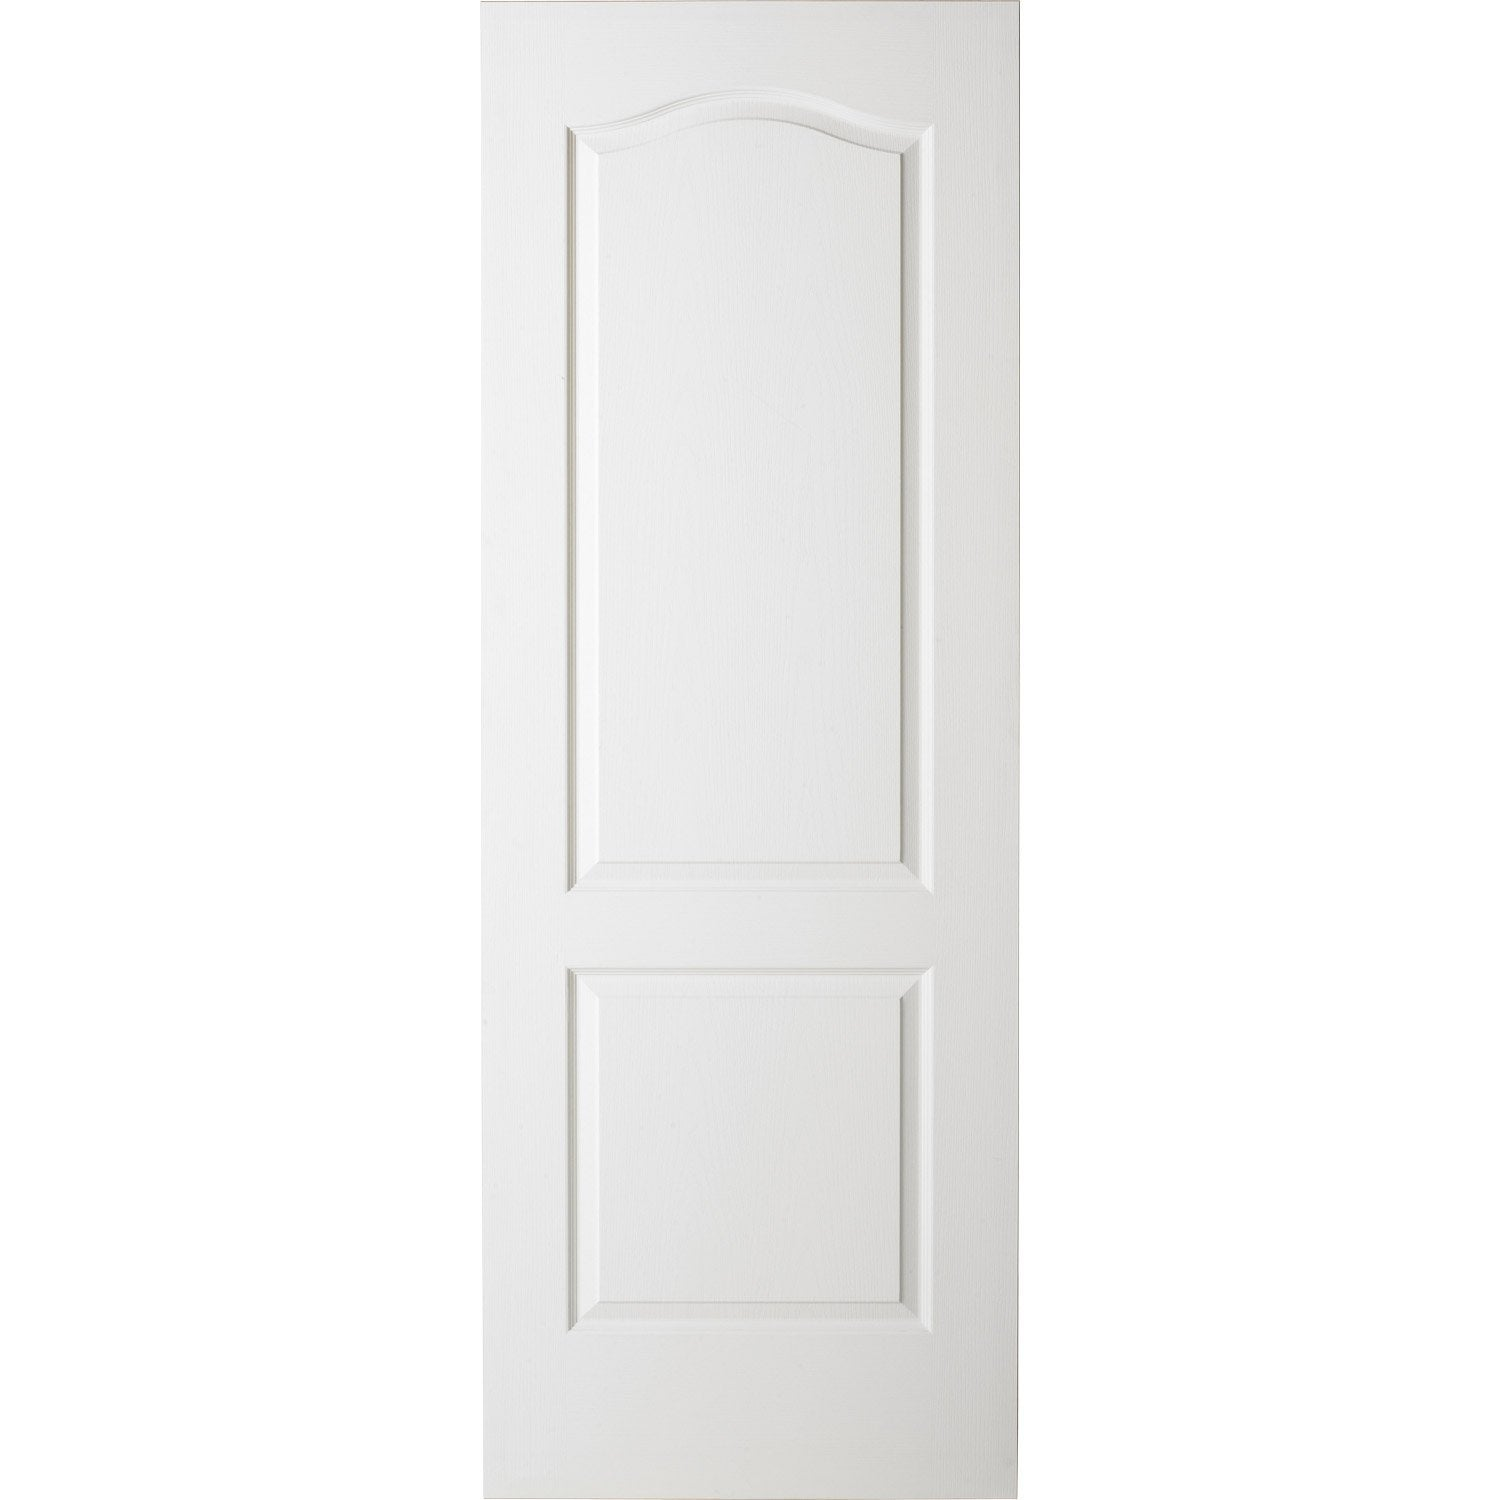 Porte coulissante postform e x cm leroy merlin for Porte coulissante 140 cm